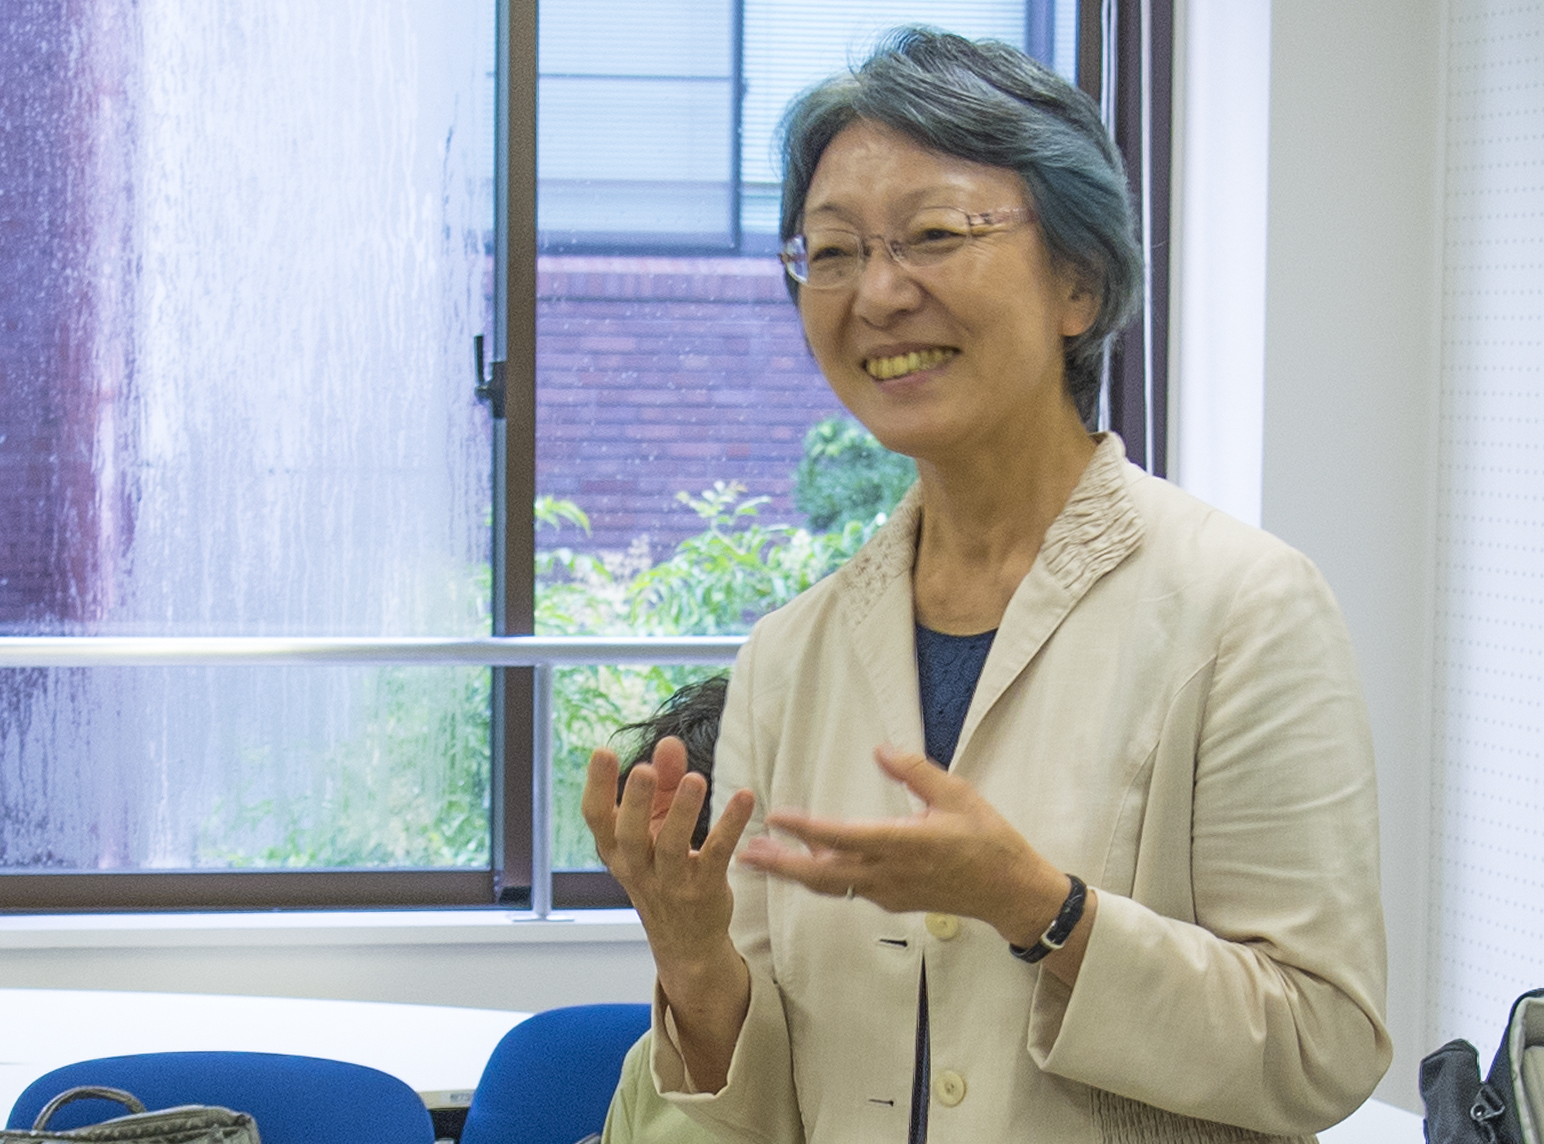 The first female dean of the College of International Relations at Ritsumeikan University smiles broadly